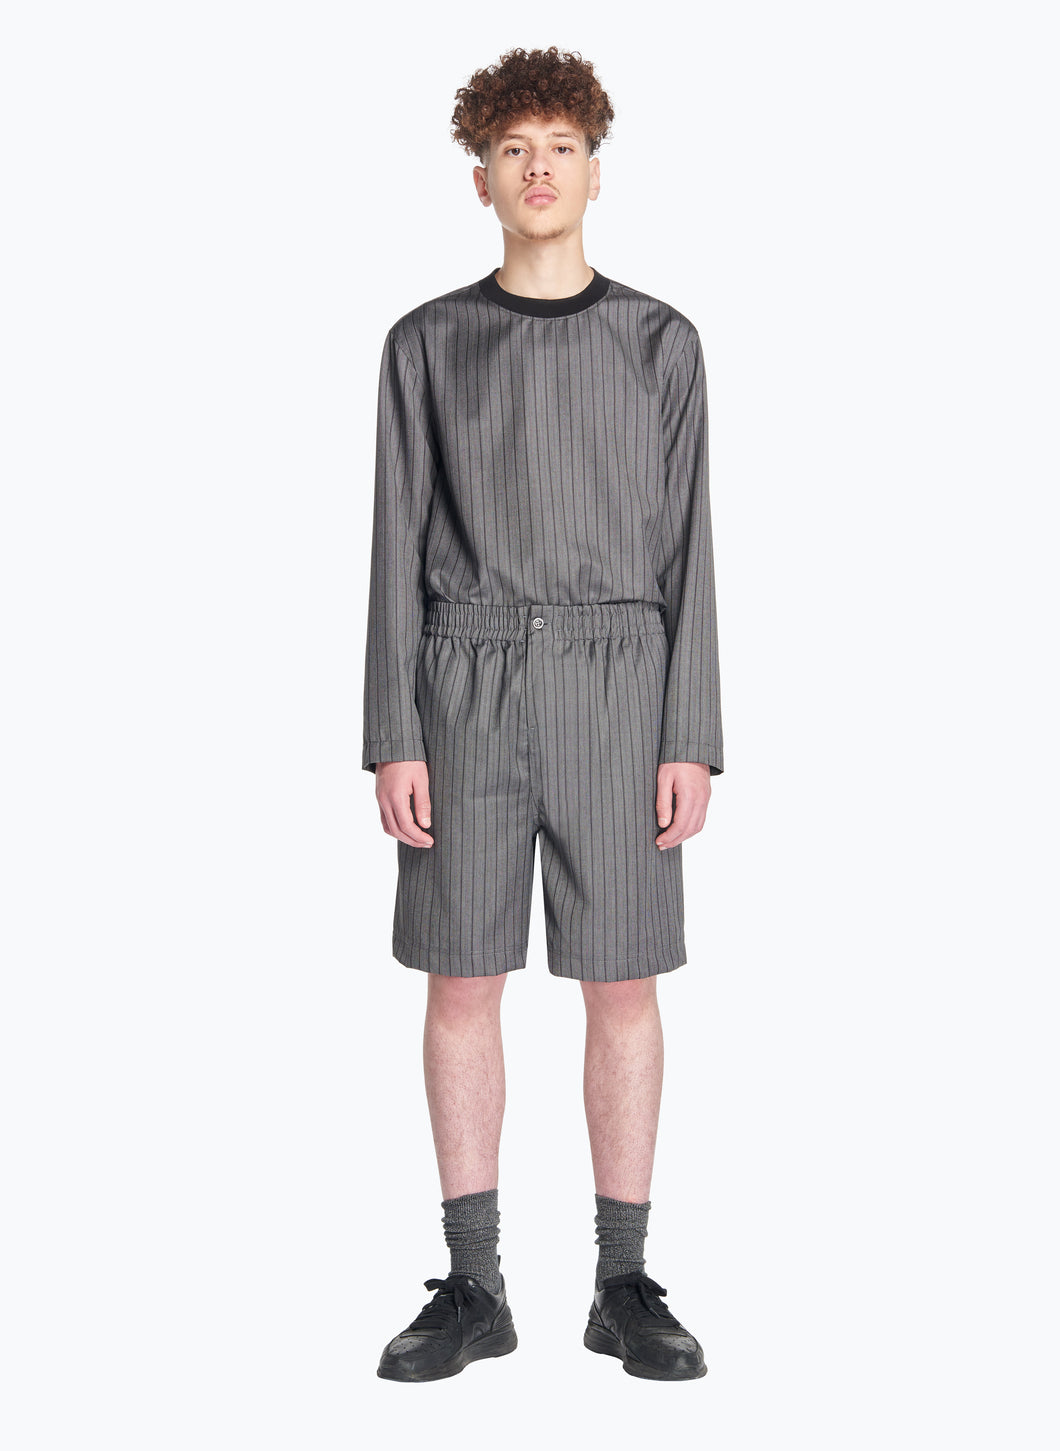 Bermuda Shorts with Stitched Waist in Grey Striped Cool Wool